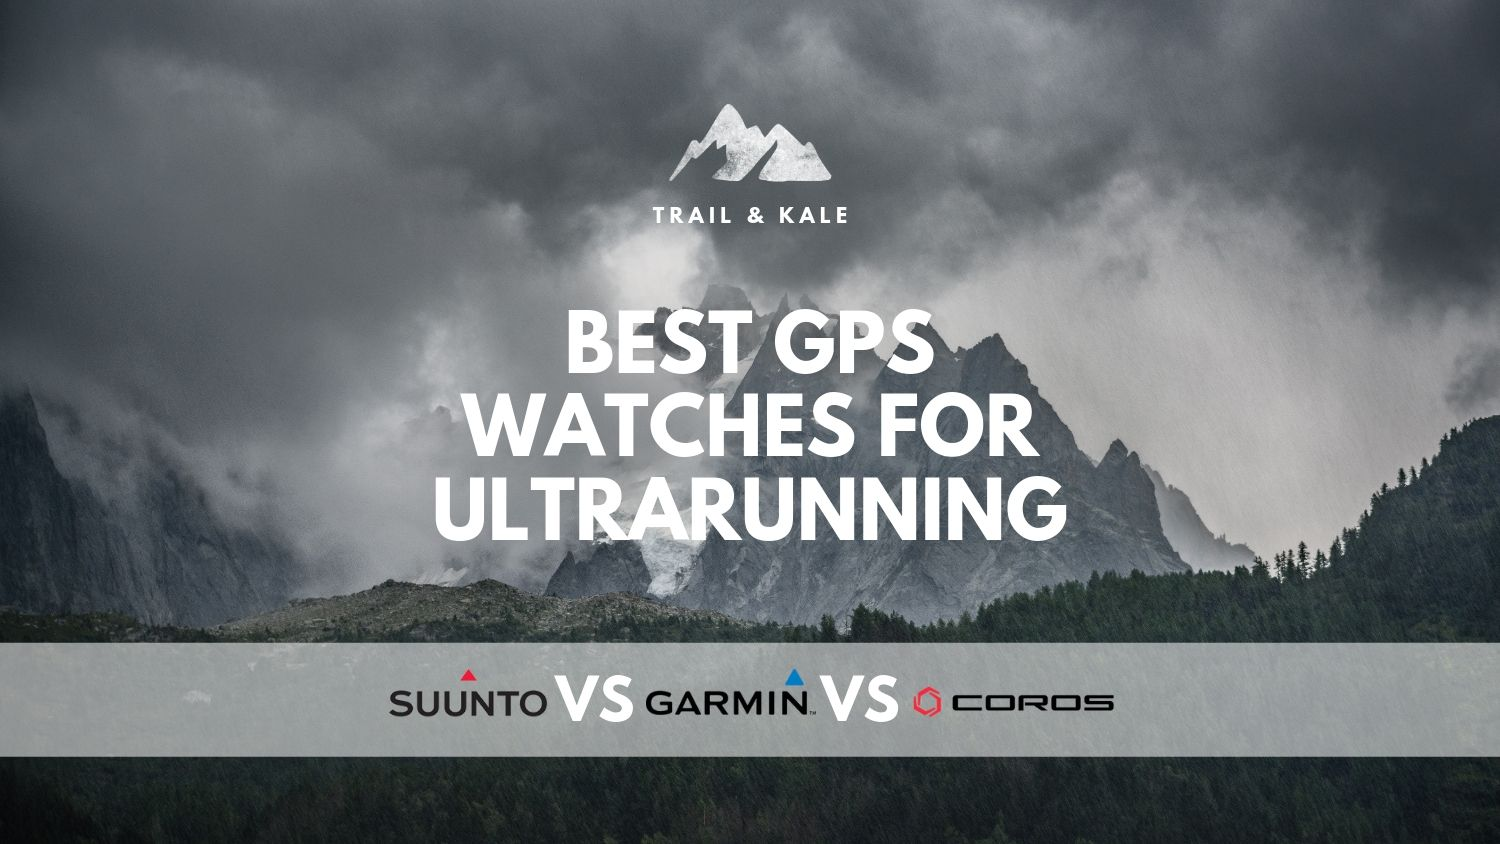 best GPS watches for ultrarunning garmin suunto coros trail and kale min